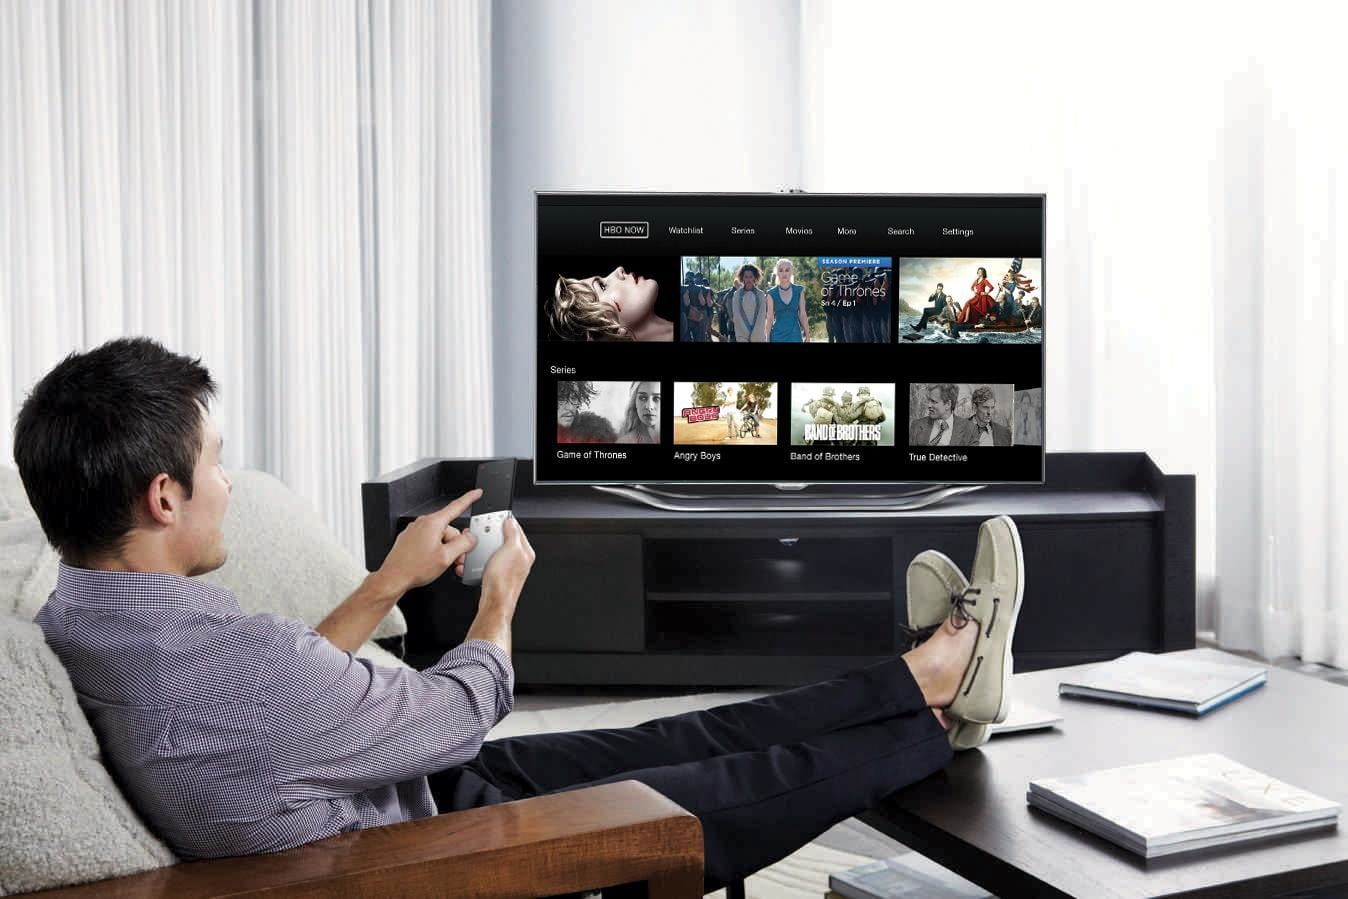 HBO Go vs HBO Now: Which Is The Best HBO Streaming Service?